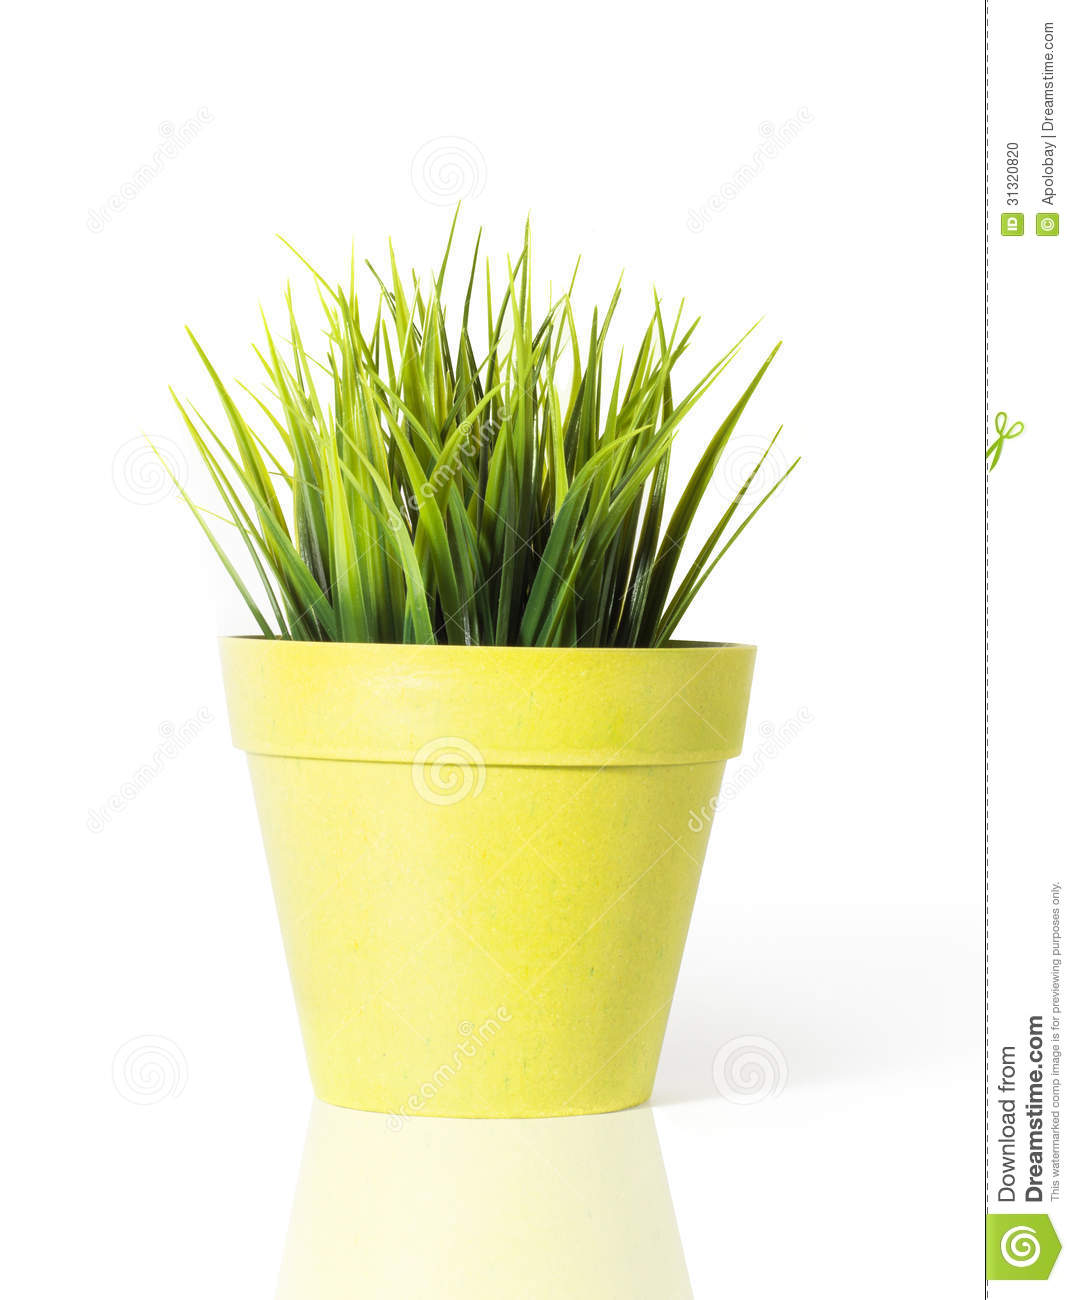 Green grass in a yellow flower pot isolated on white background green grass in a yellow flower pot isolated on white background mightylinksfo